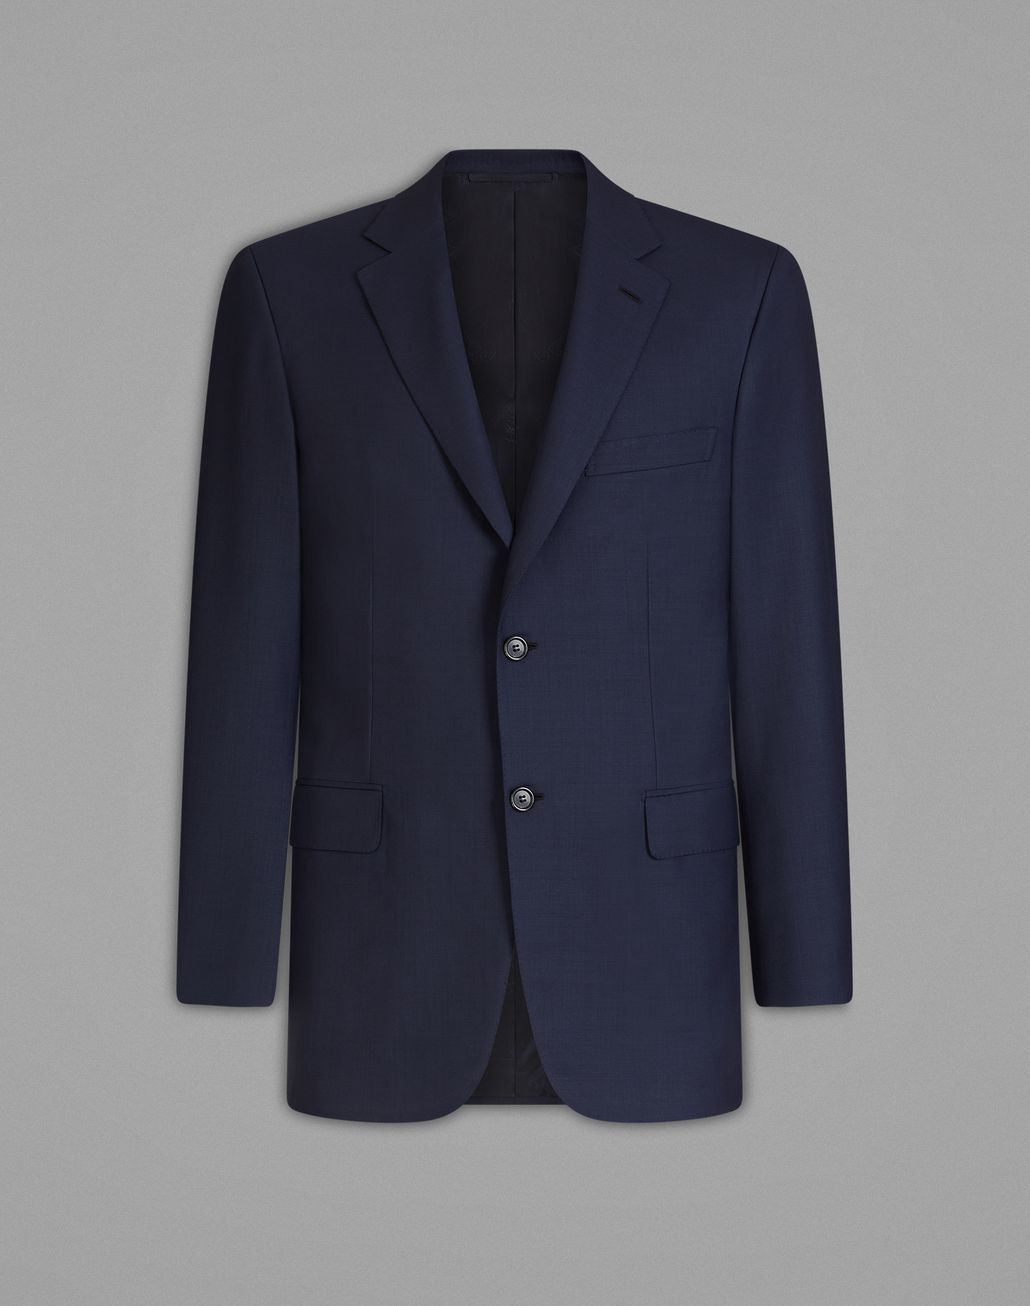 BRIONI  'Essential' Navy Blue Ravello Jacket Jackets Man f